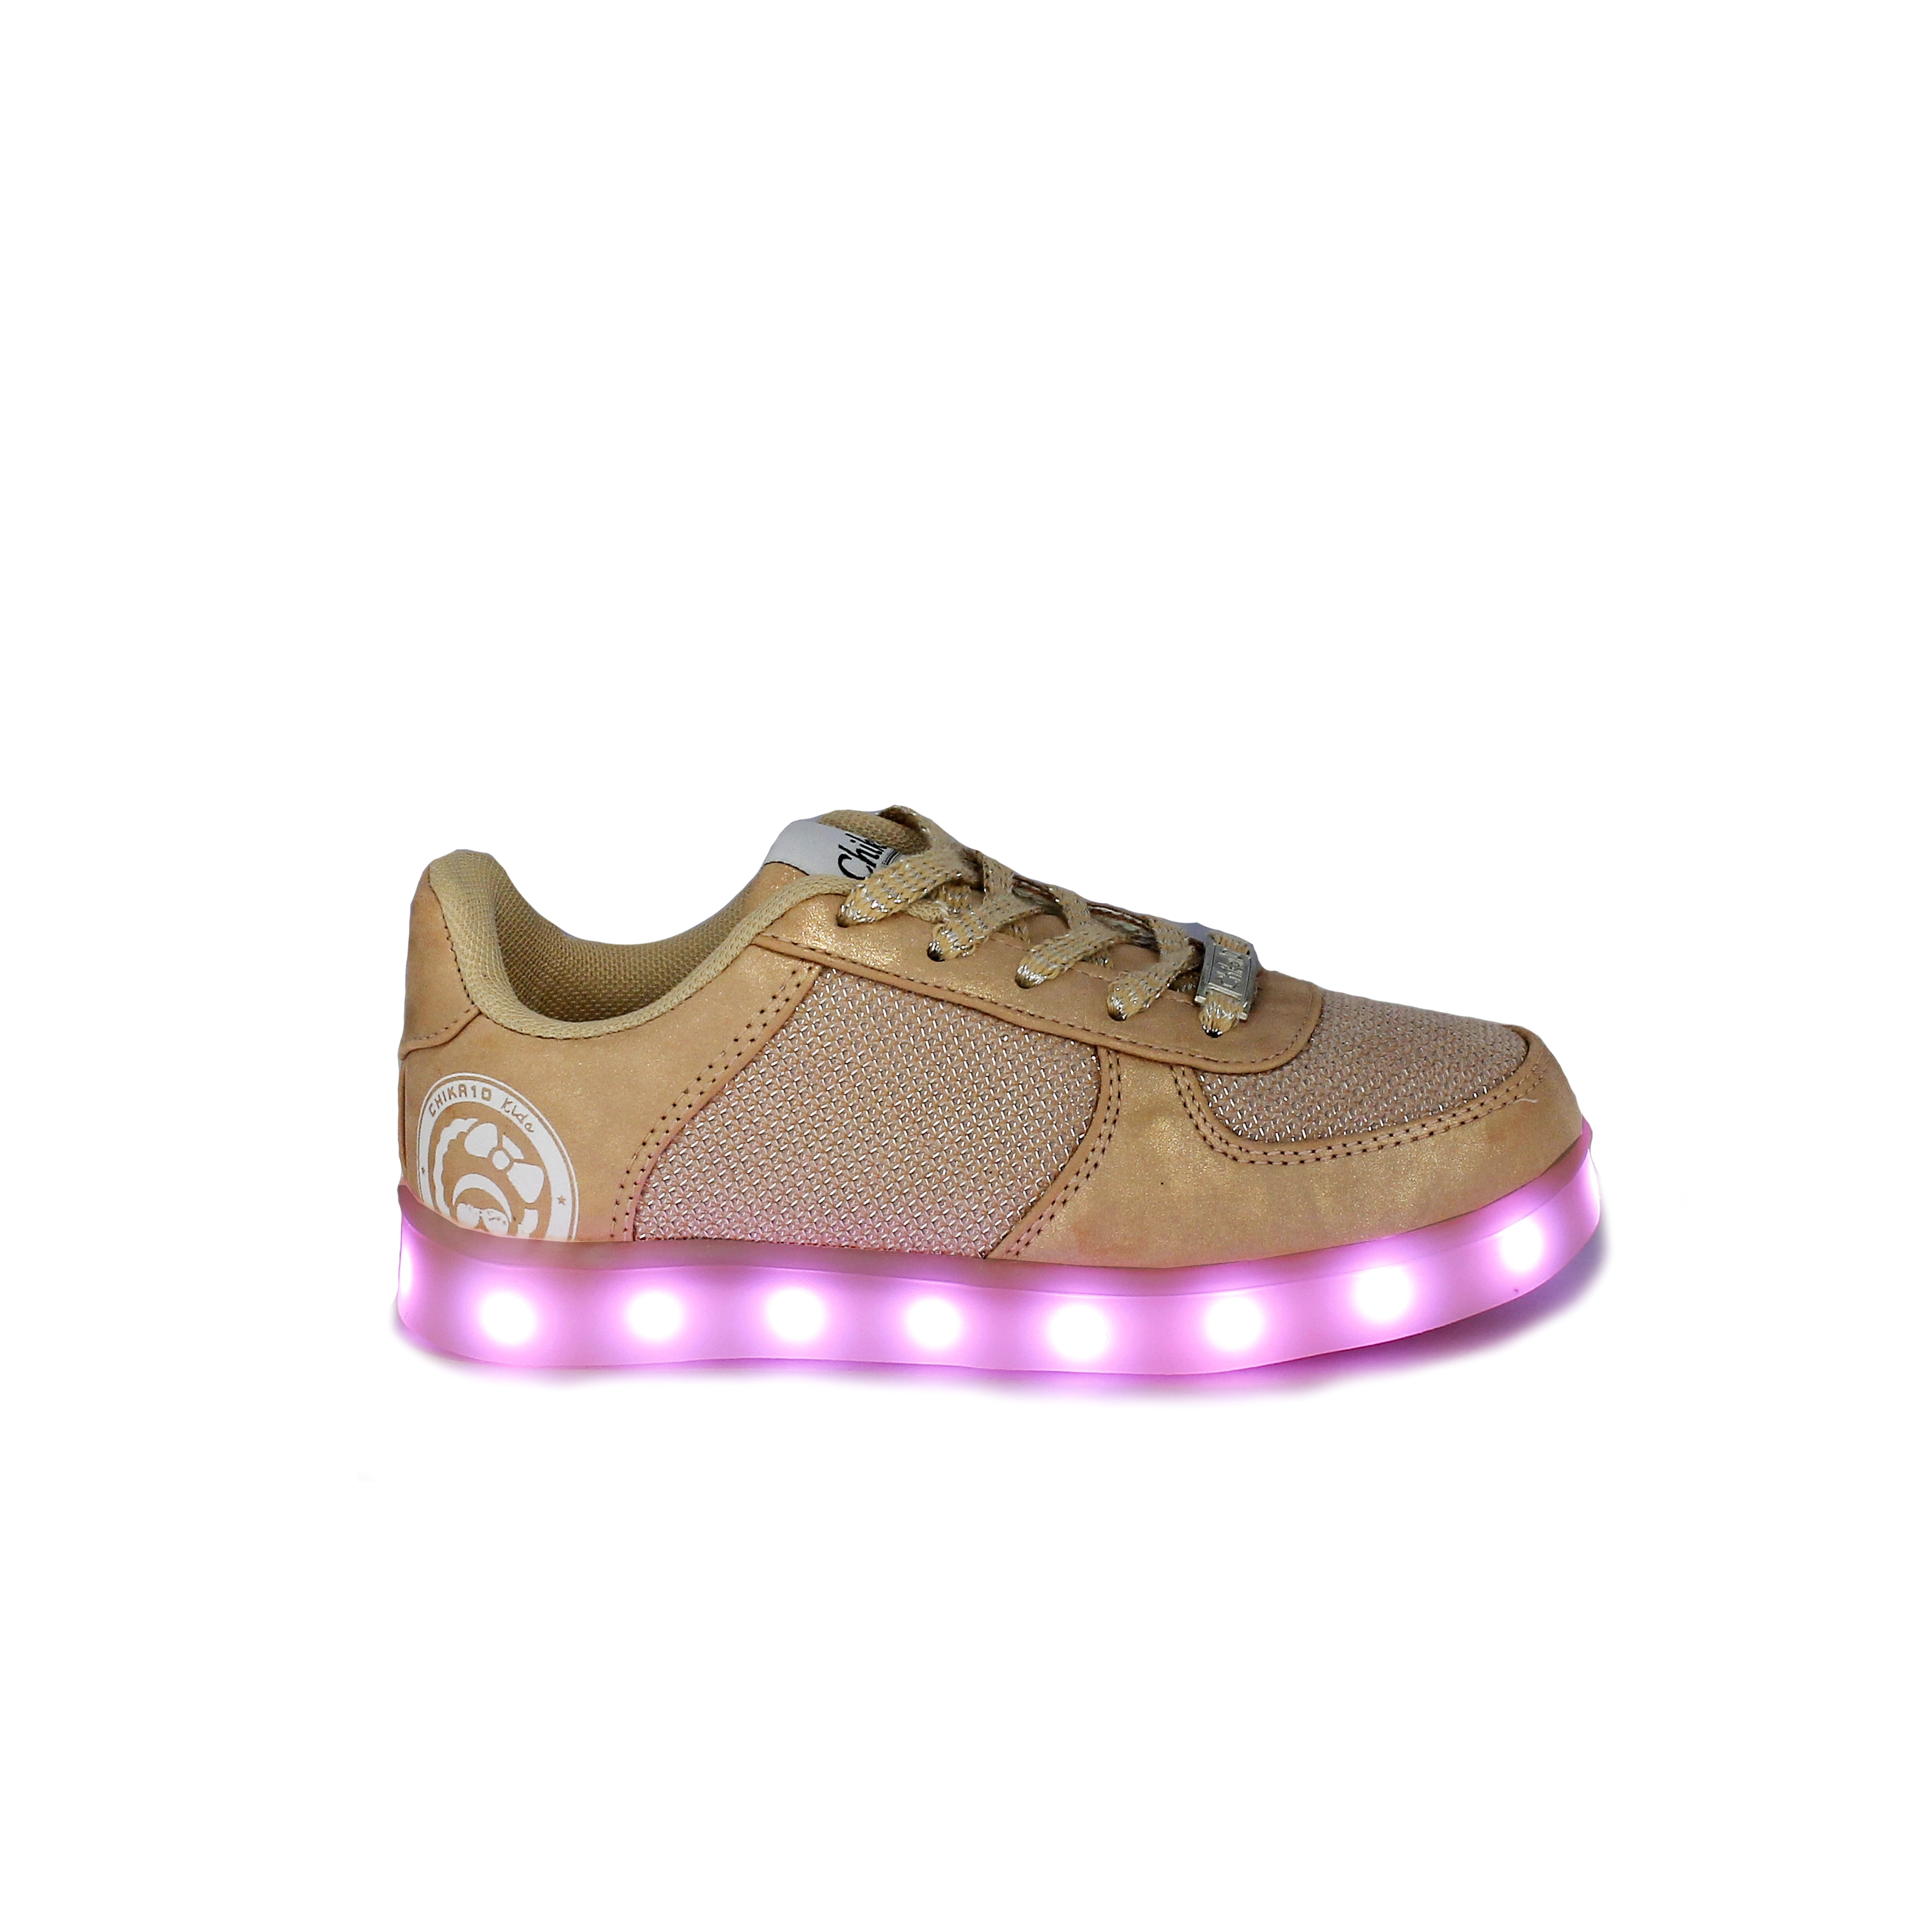 zapatillas rosas con luces led